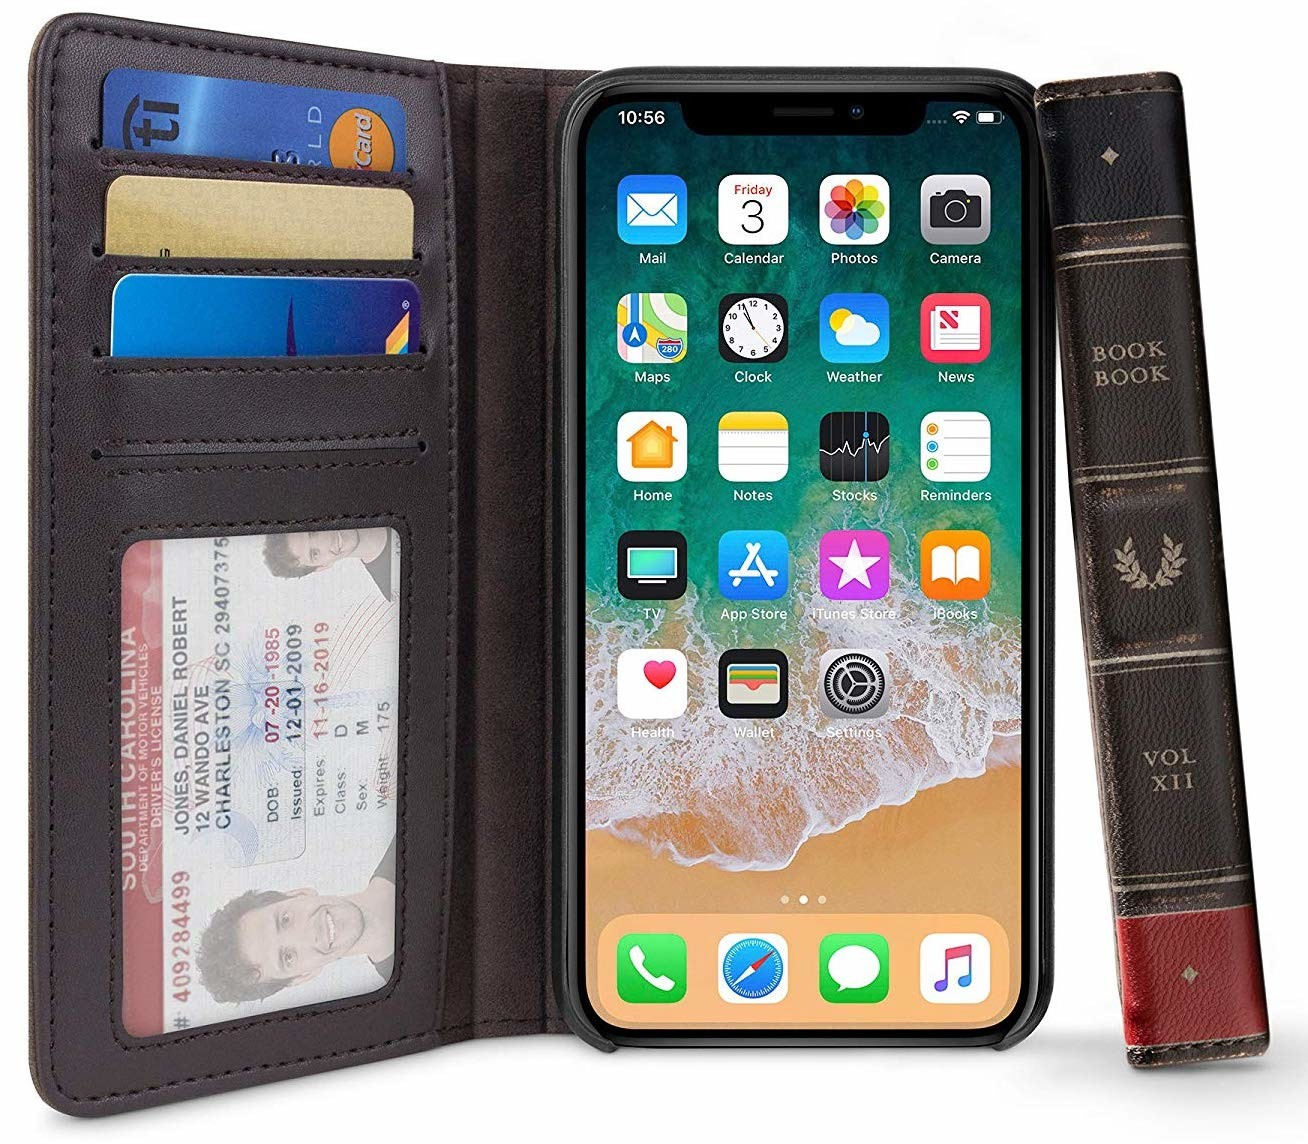 Best Cases For Iphone Xs Imore Case Xr Spigen Carbon Fiber Softcase Rugged Armor Casing Bookish Style